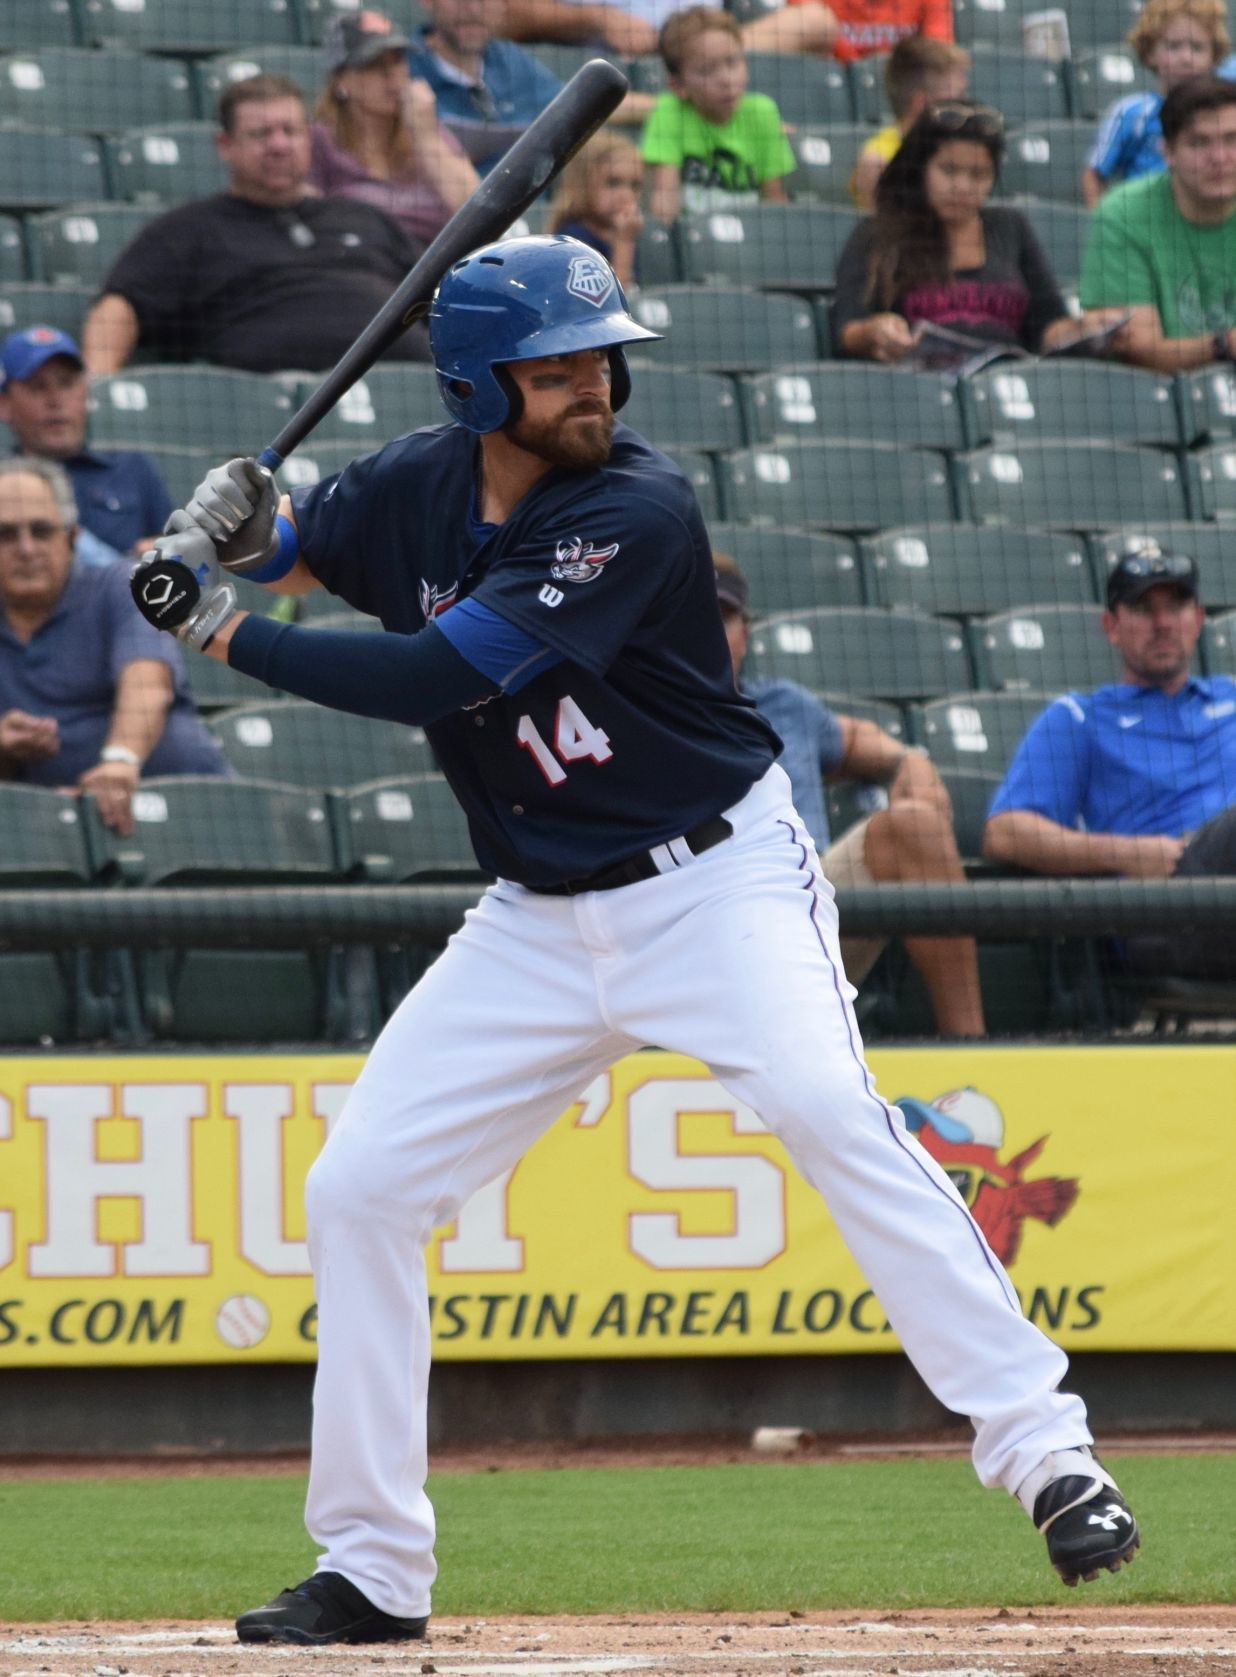 Will Middlebrooks hit a home run for the second straight game and the Round Rock Express beat the New Orleans Baby Cakes 6-3 in seven innings Friday night.